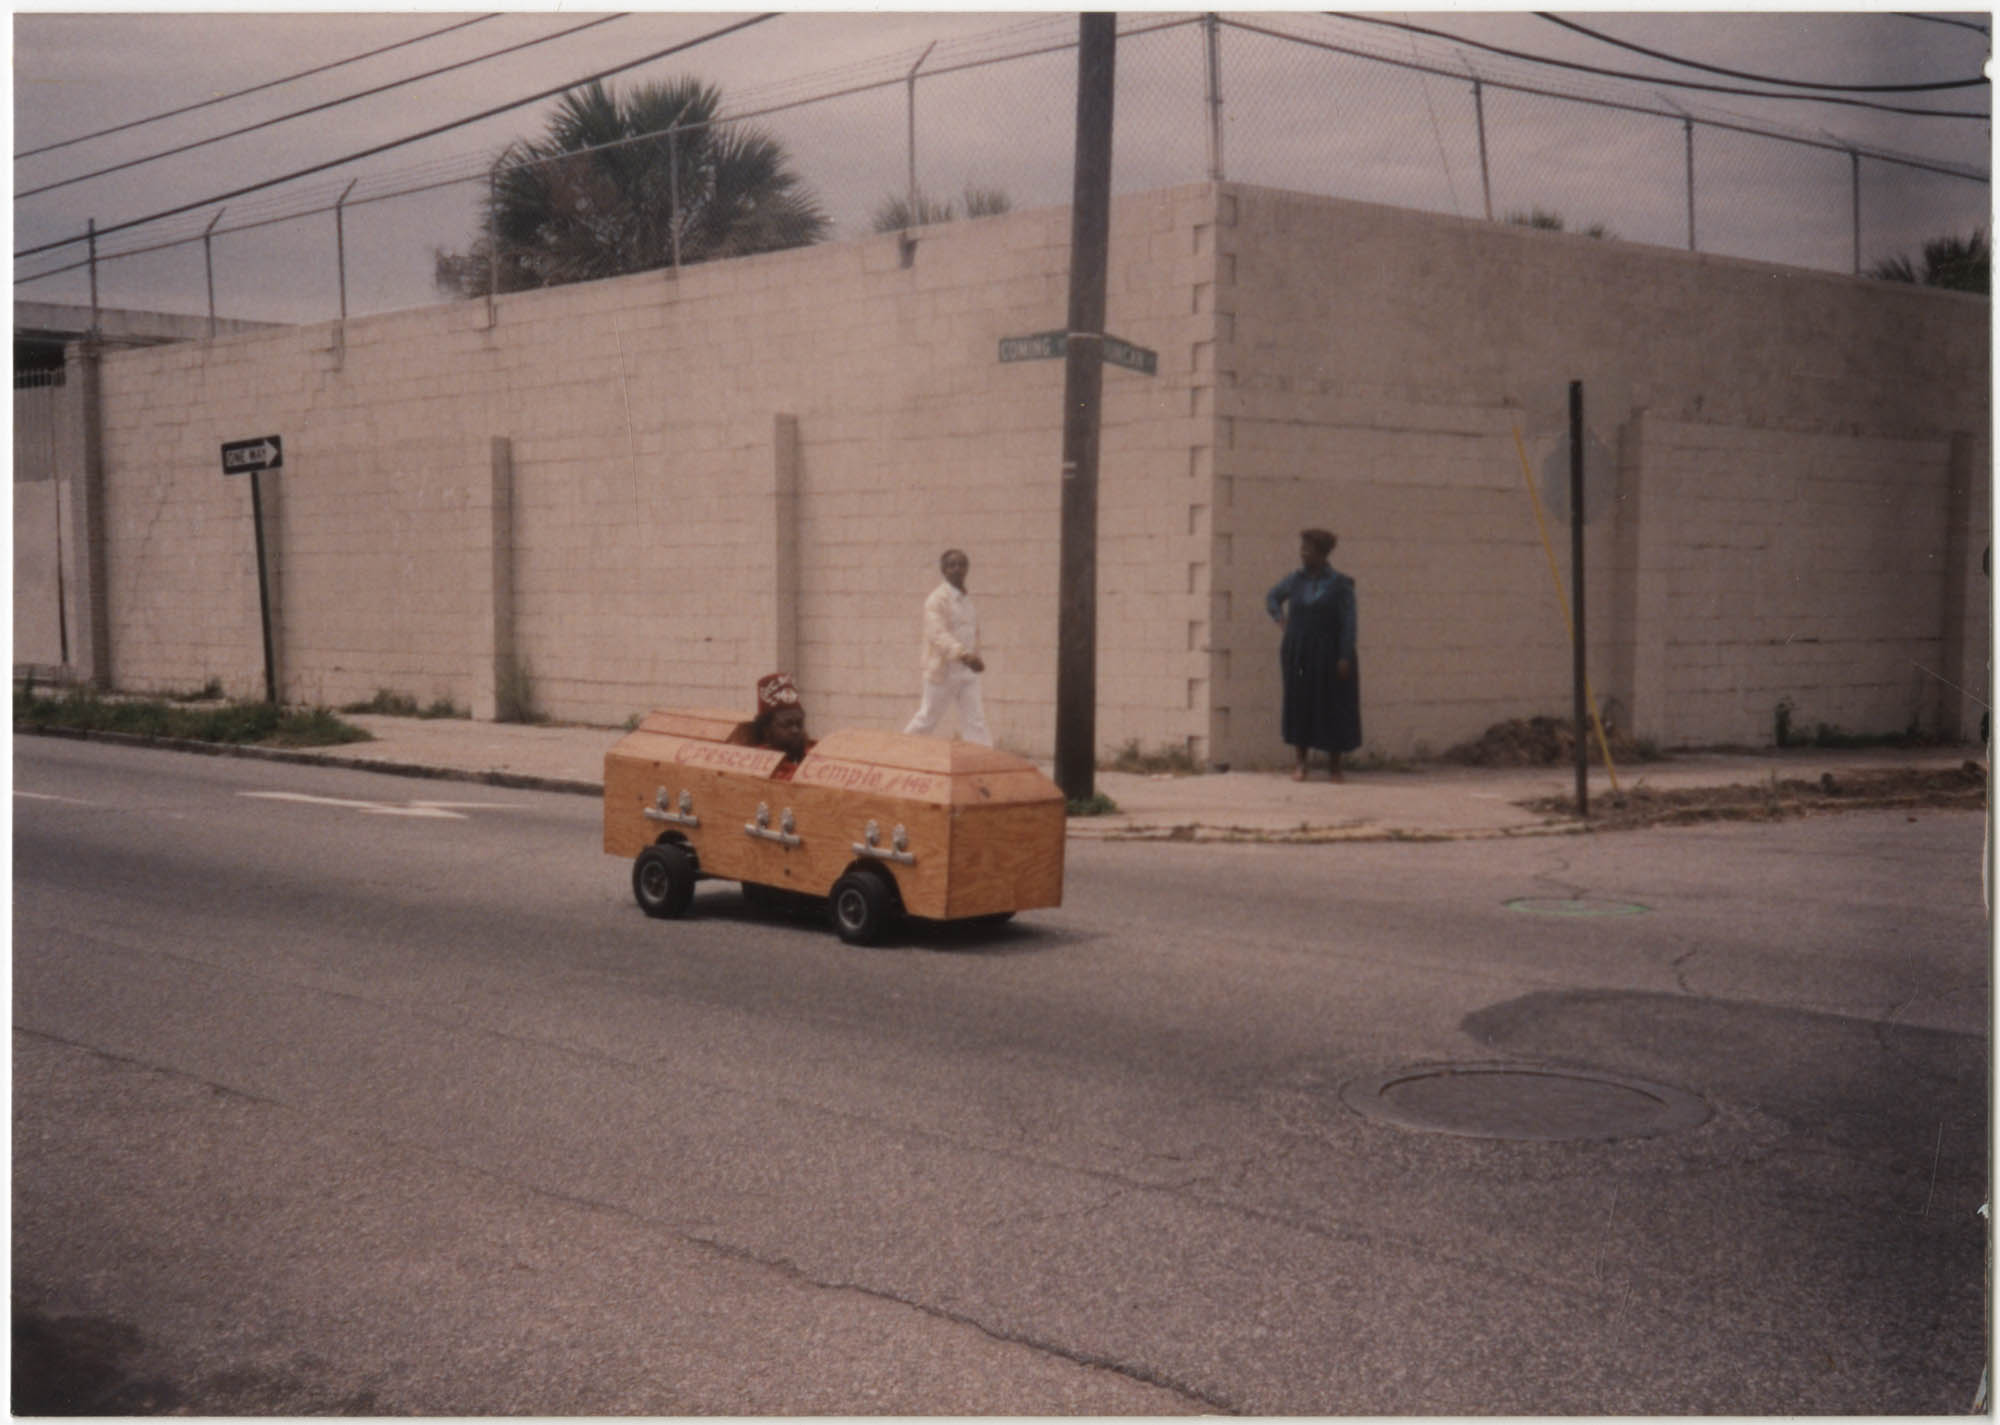 Photograph of a Soapbox Car